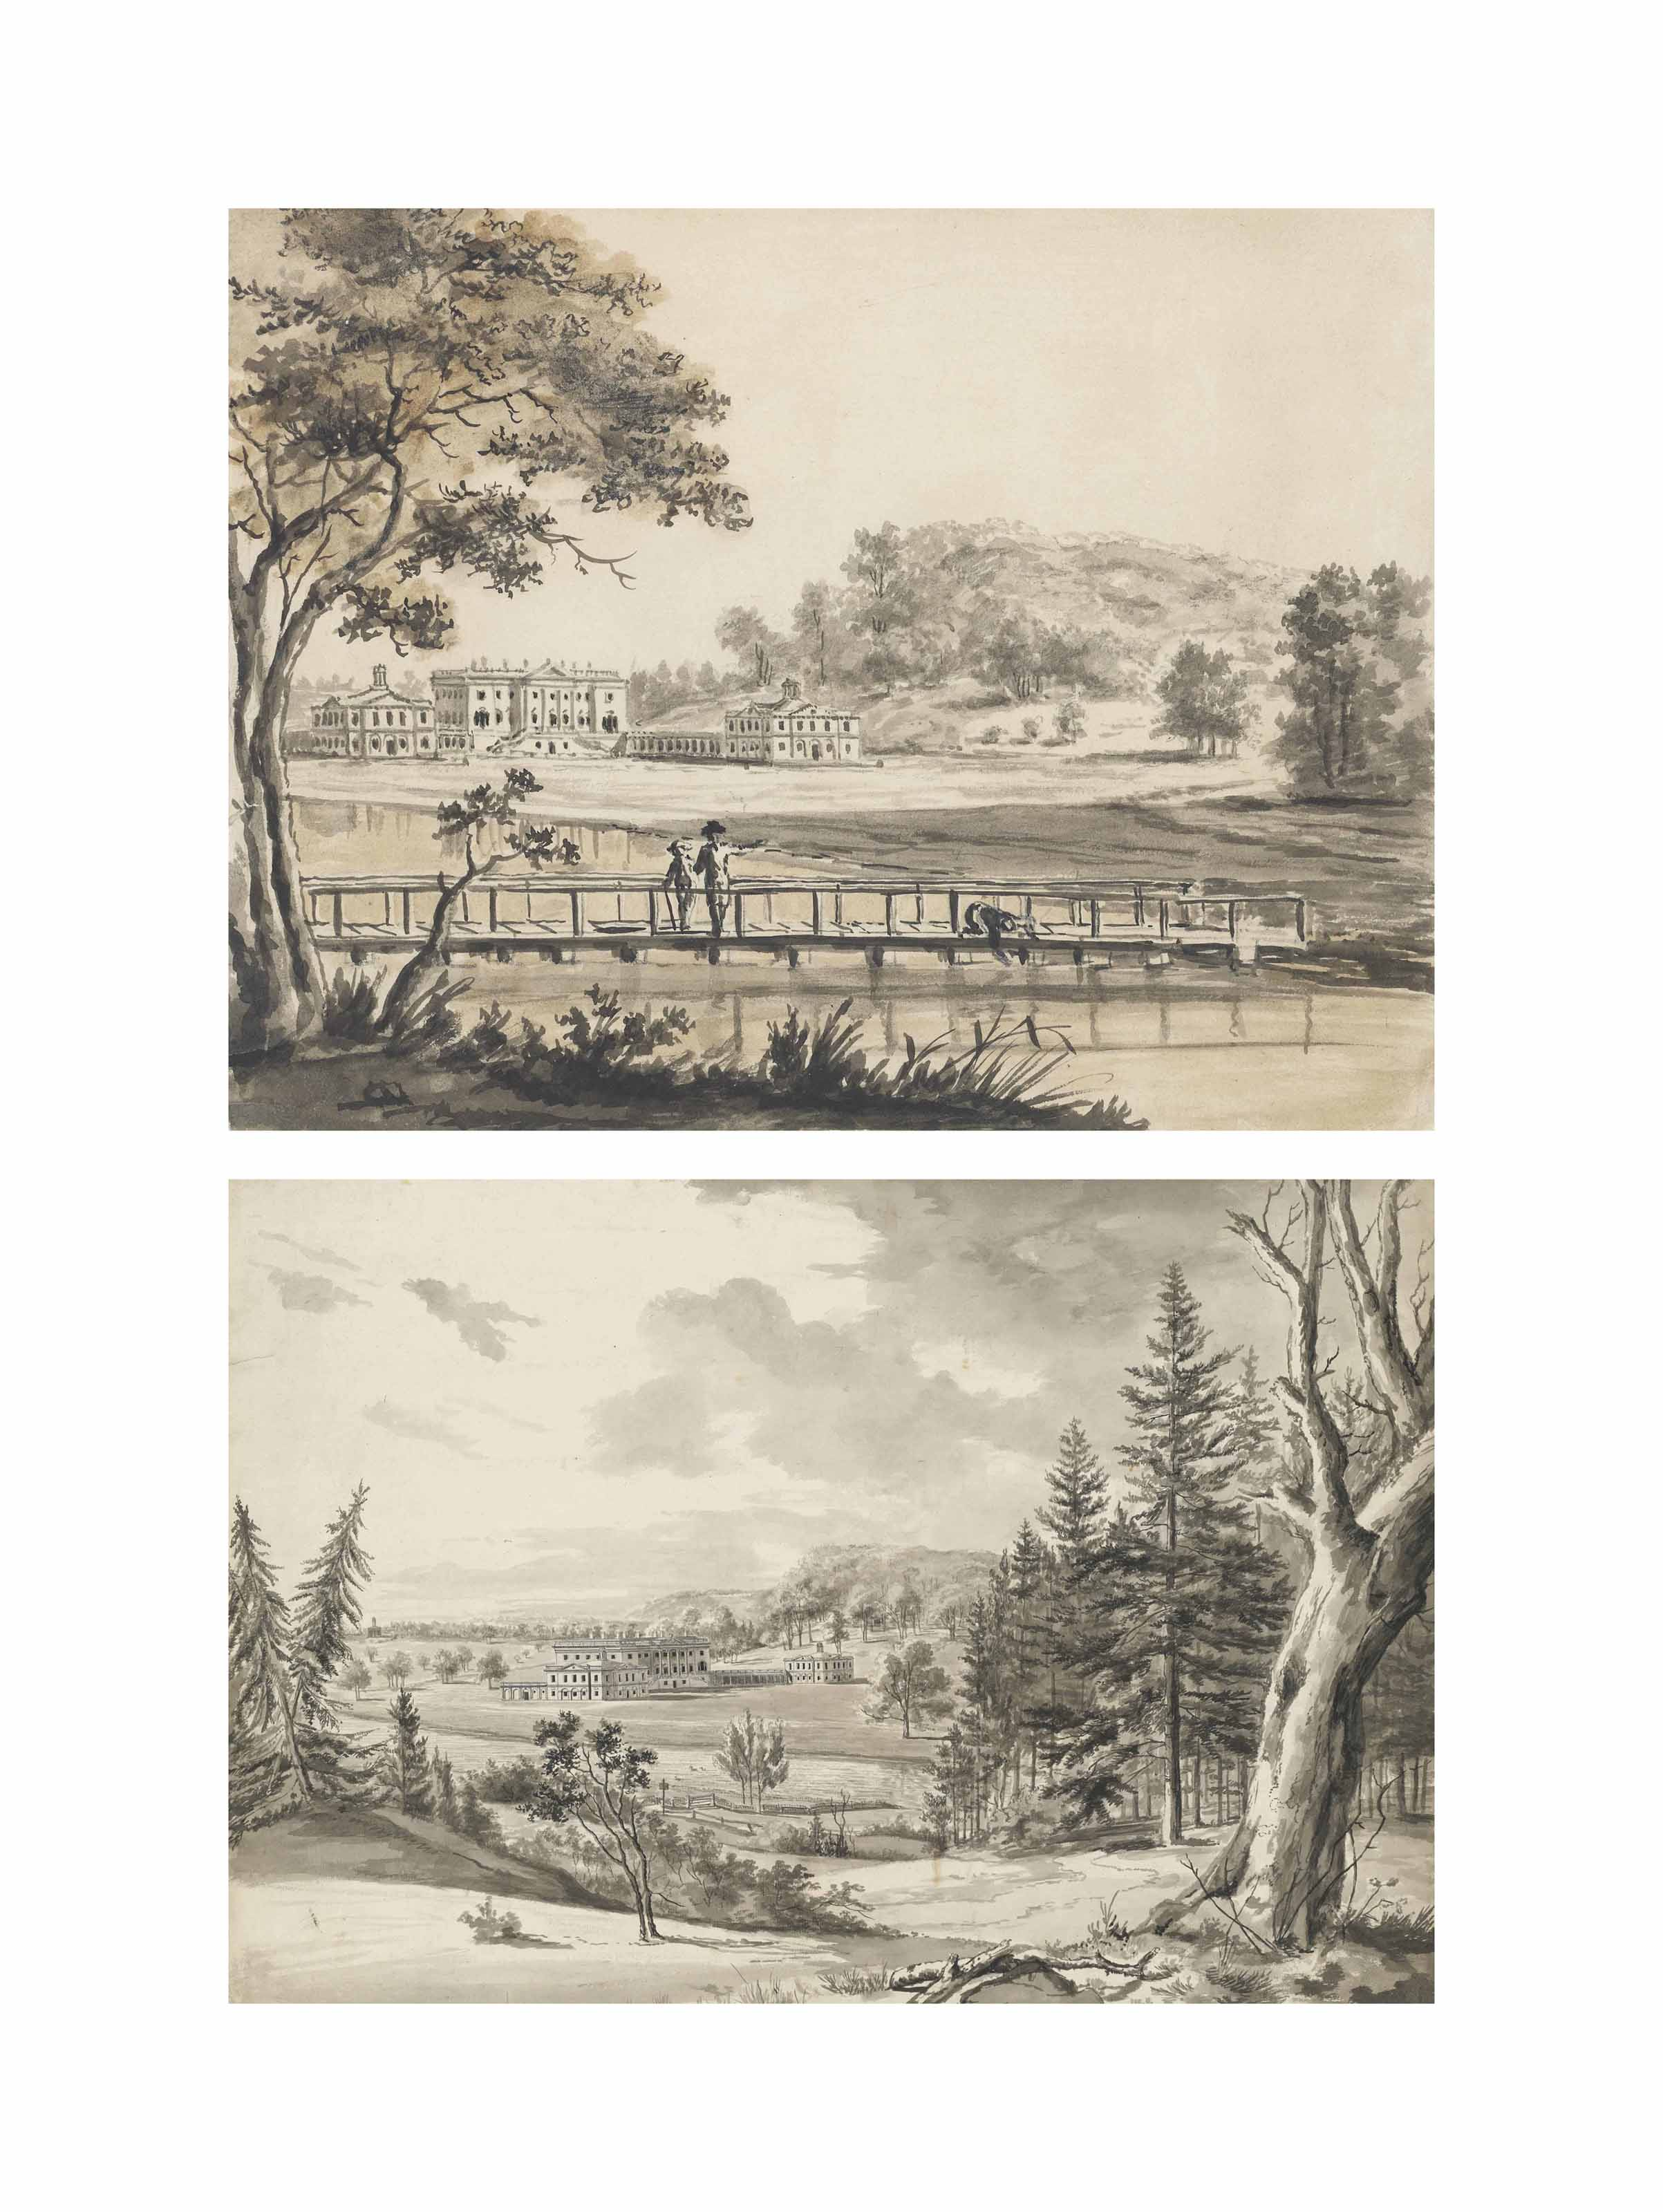 Fonthill Splendens including: Views of the Principal Front, from across the Lake near the Boathouse (with a second sheet extending the composition to the left); from the Hill across the Lake, showing the Landscaping and two Pavilions; and from the wooden Bridge; View across the opposite Front, from across the wooden Bridge; View of the opposite Front, from across the Lake; and the Hermitage; two views of the grounds and Hindon; and a sketch of a Gothic Abbey near water